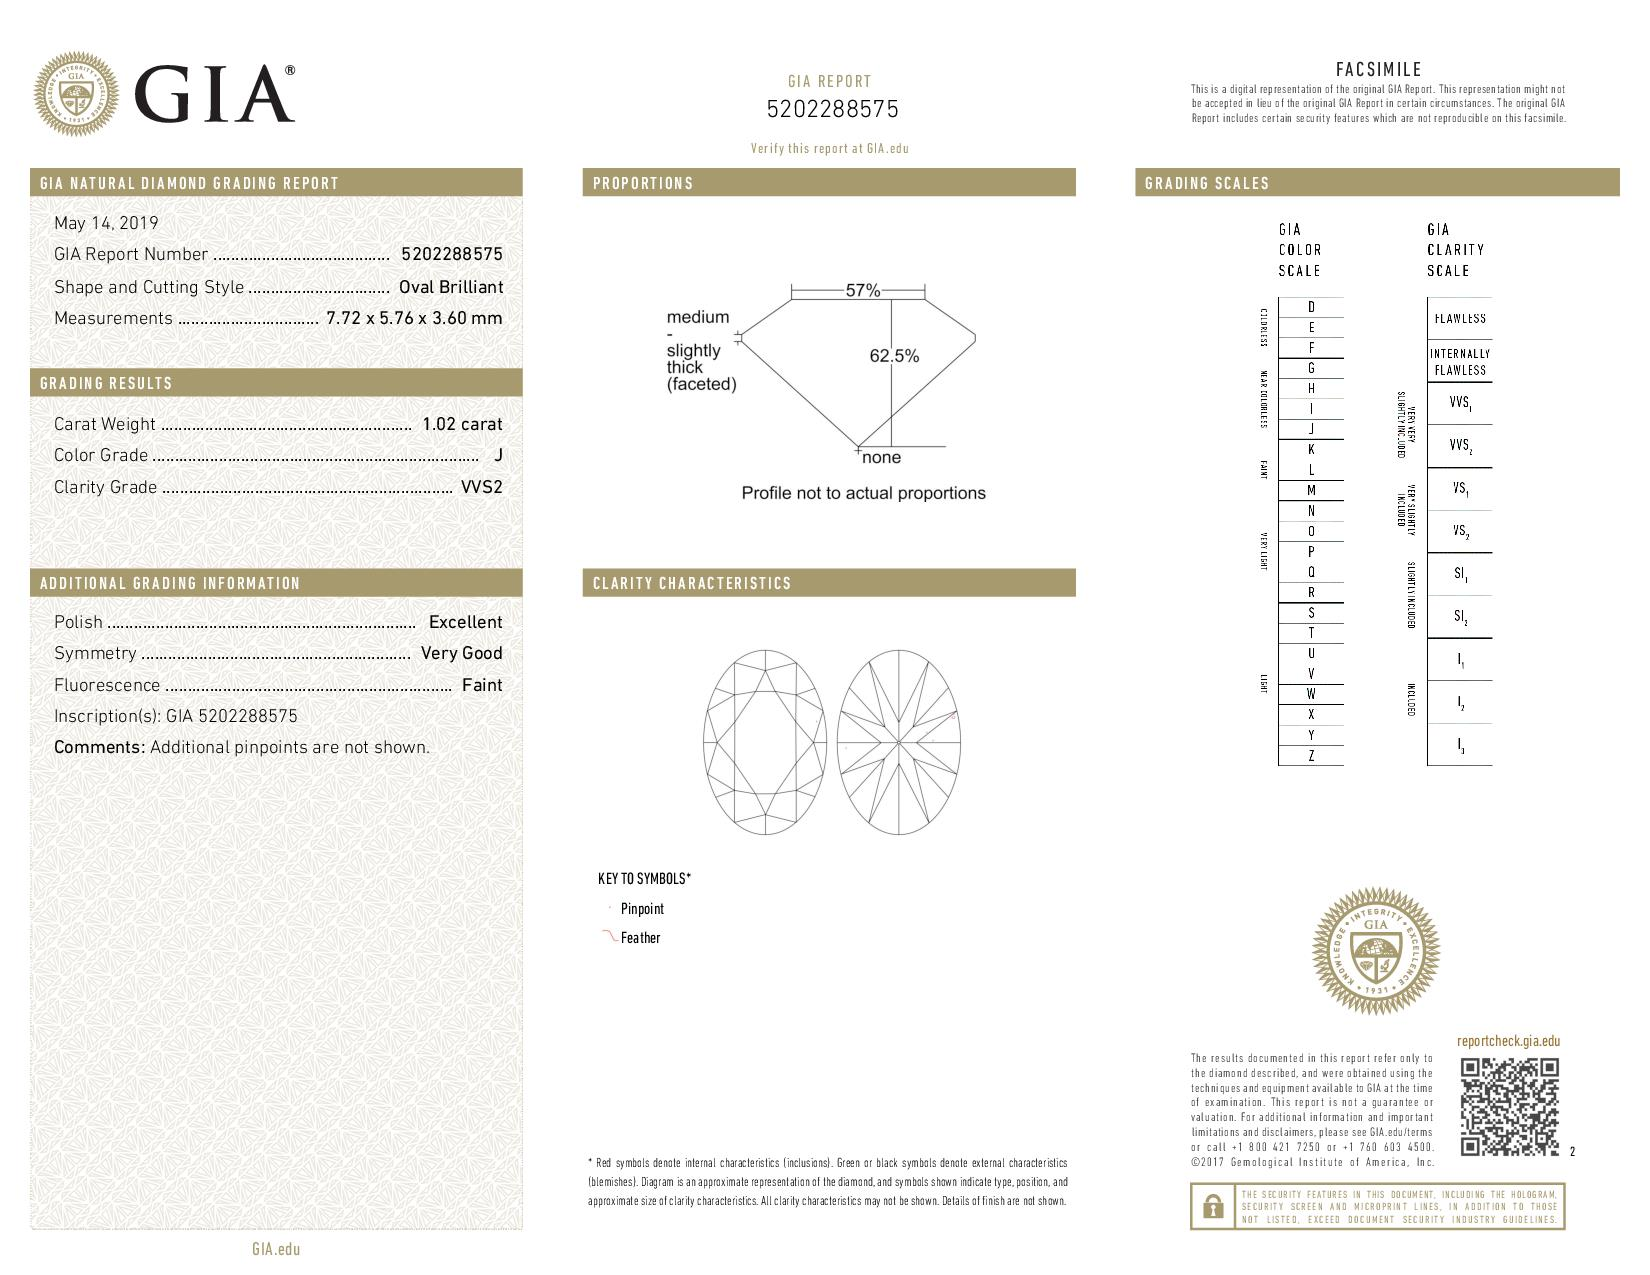 This is a 1.02 carat oval shape, J color, VVS2 clarity natural diamond accompanied by a GIA grading report.